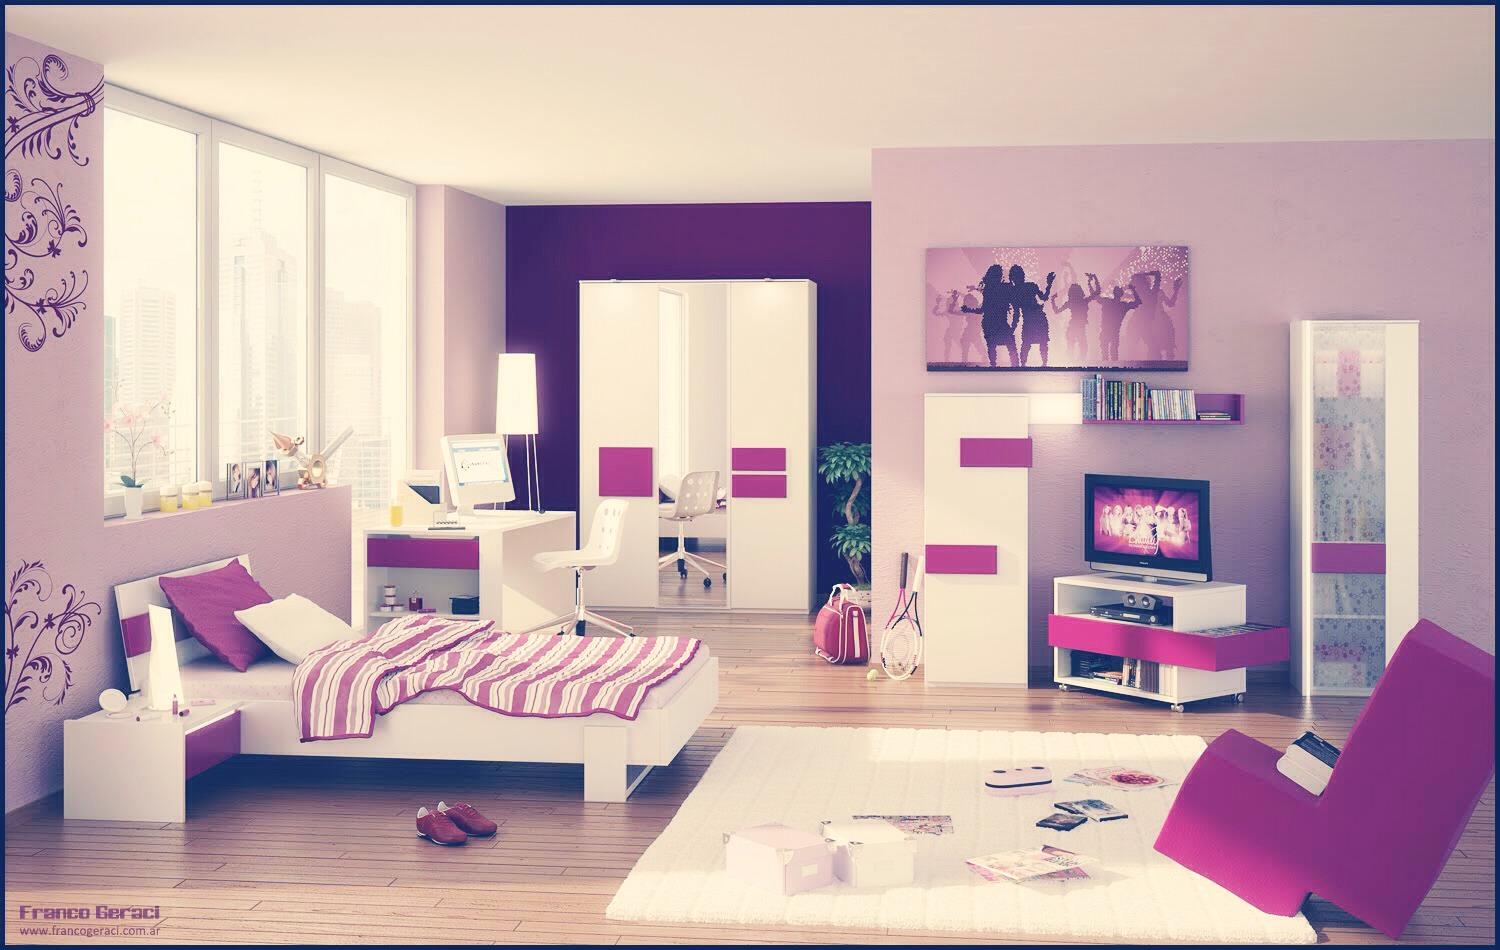 Teenage dream room design decoration Dream room design